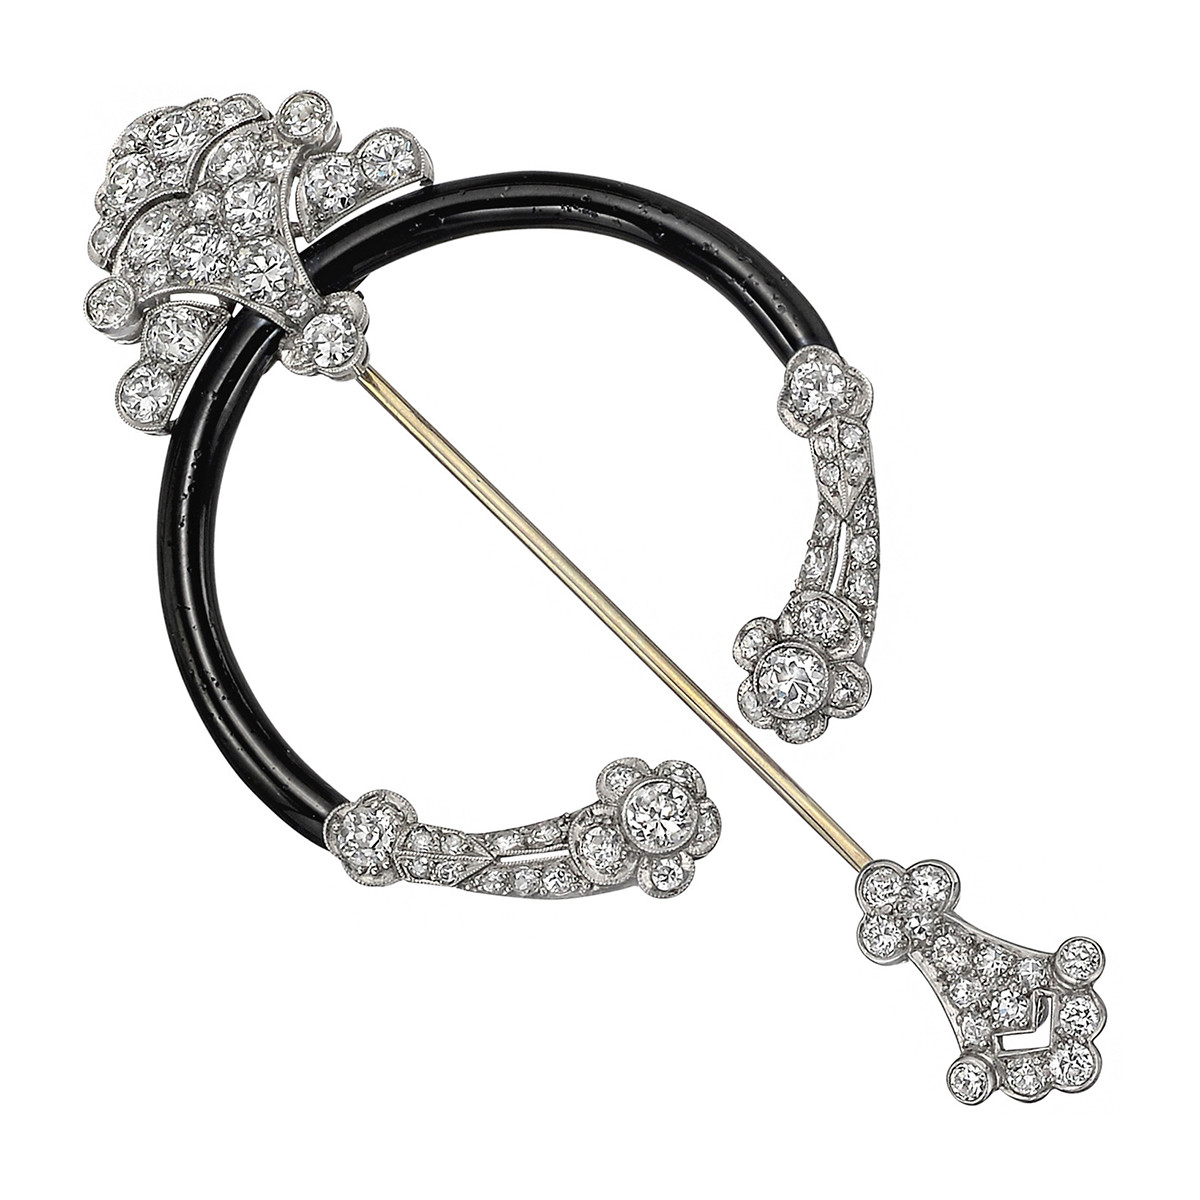 Antique Diamond & Black Enamel Fibula Brooch